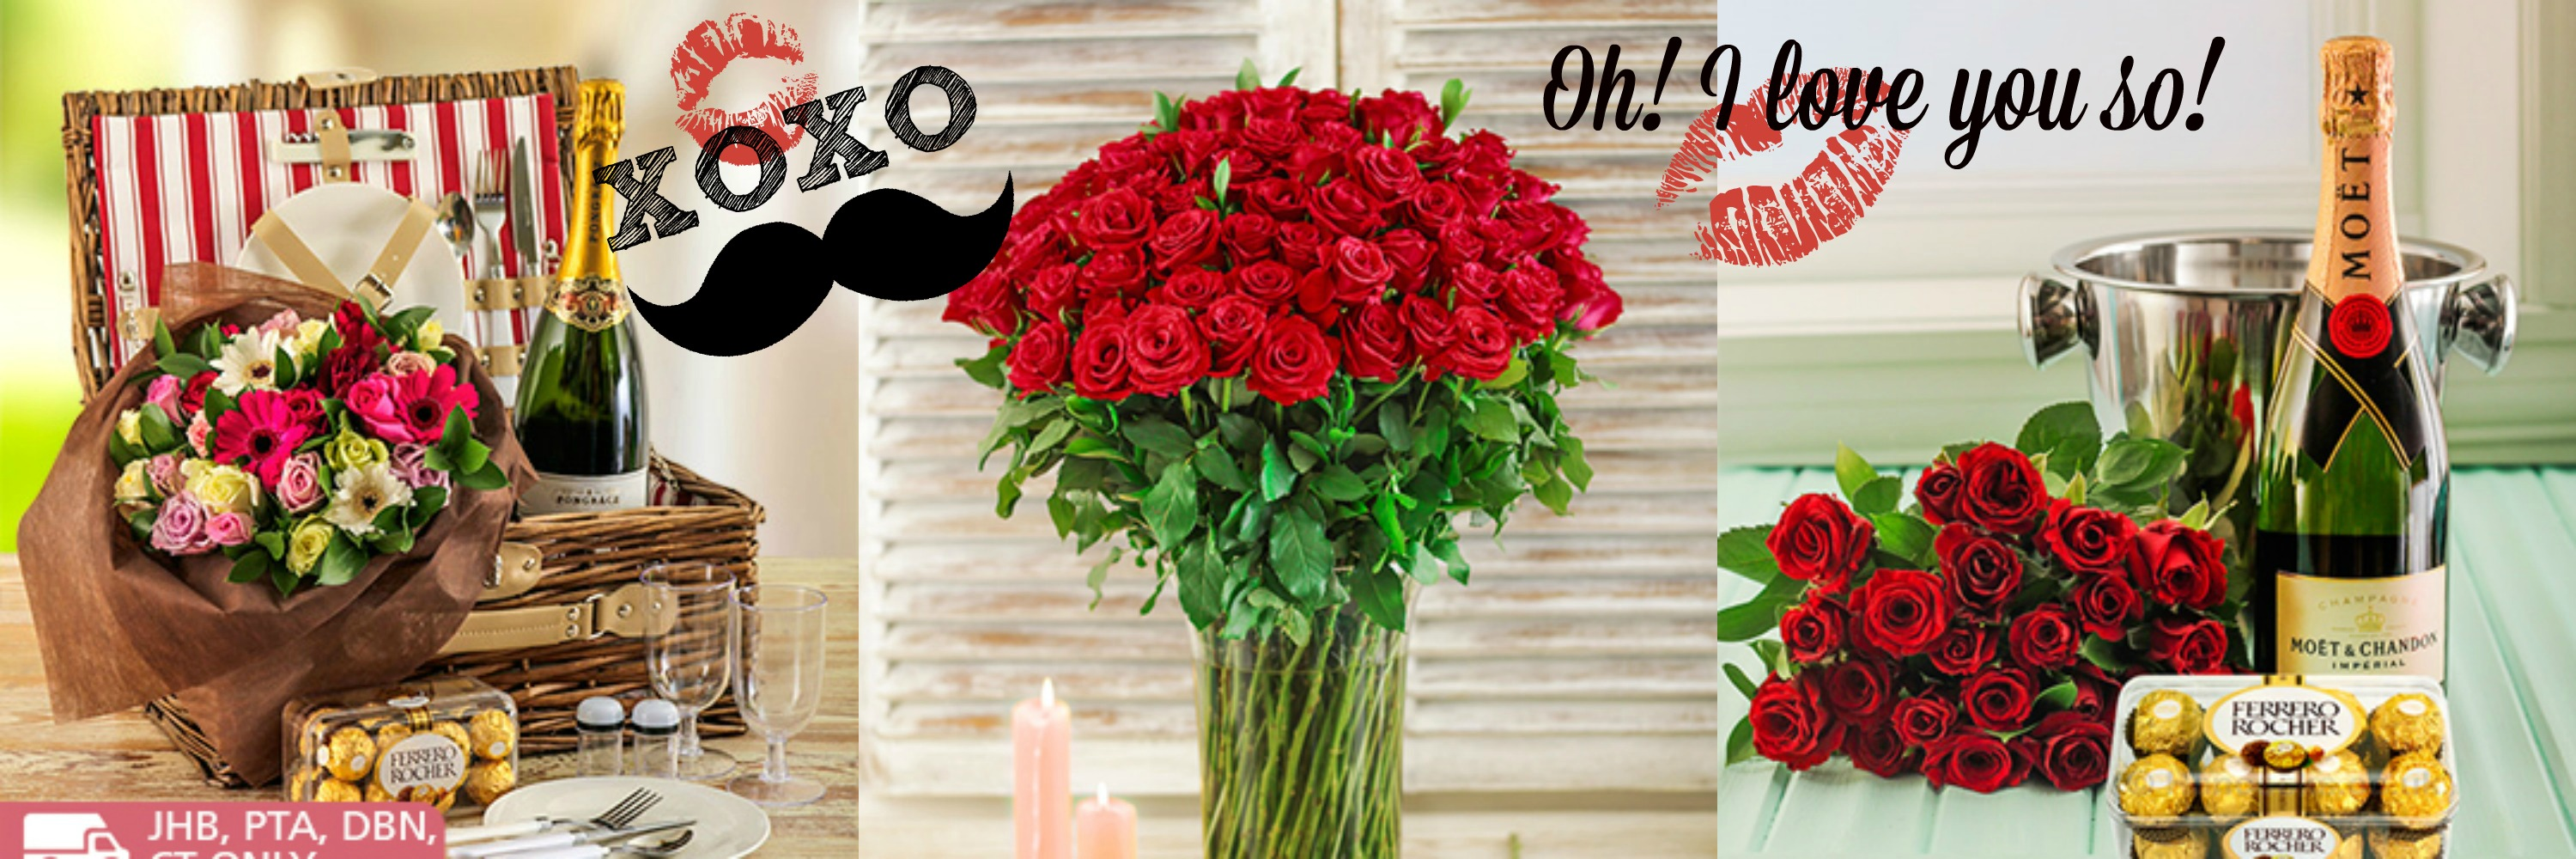 Wow Your Woman With Luxury Gifts For Valentines Day The